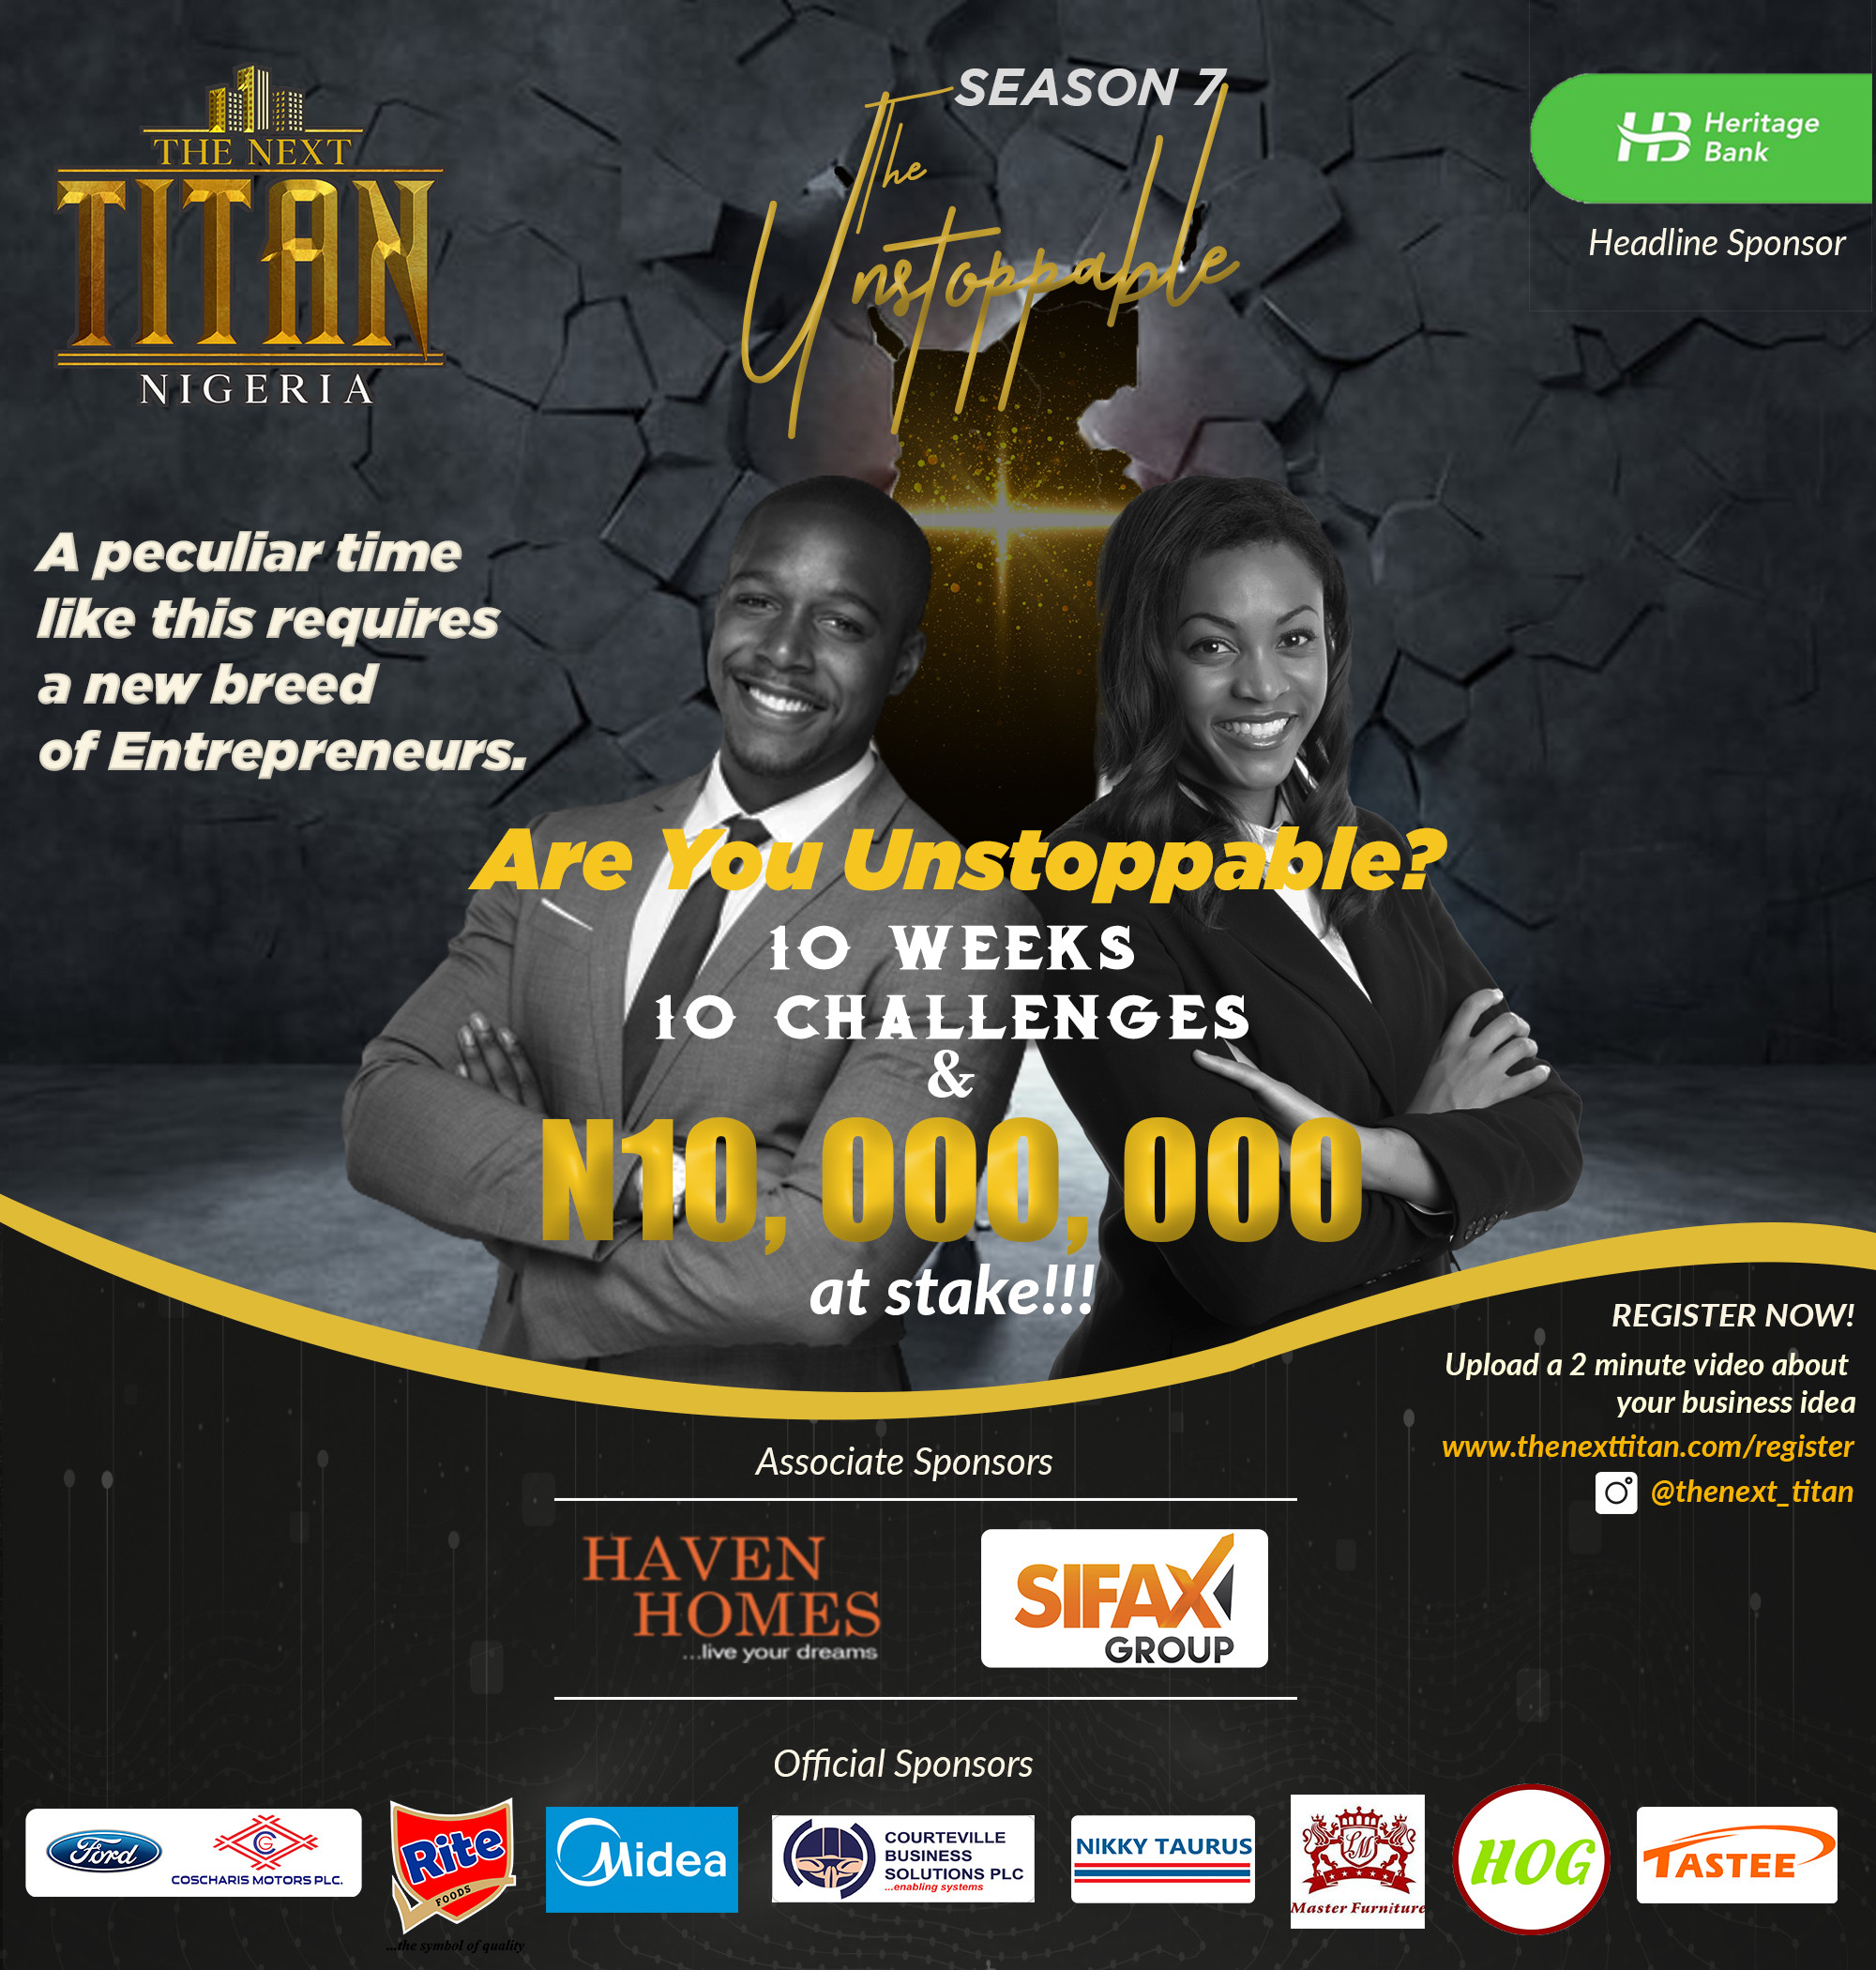 Foremost Entrepreneurial Reality Show, The Next Titan Nigeria is back for Season 7 with 10 Million Naira up for Grabs. Register Now!